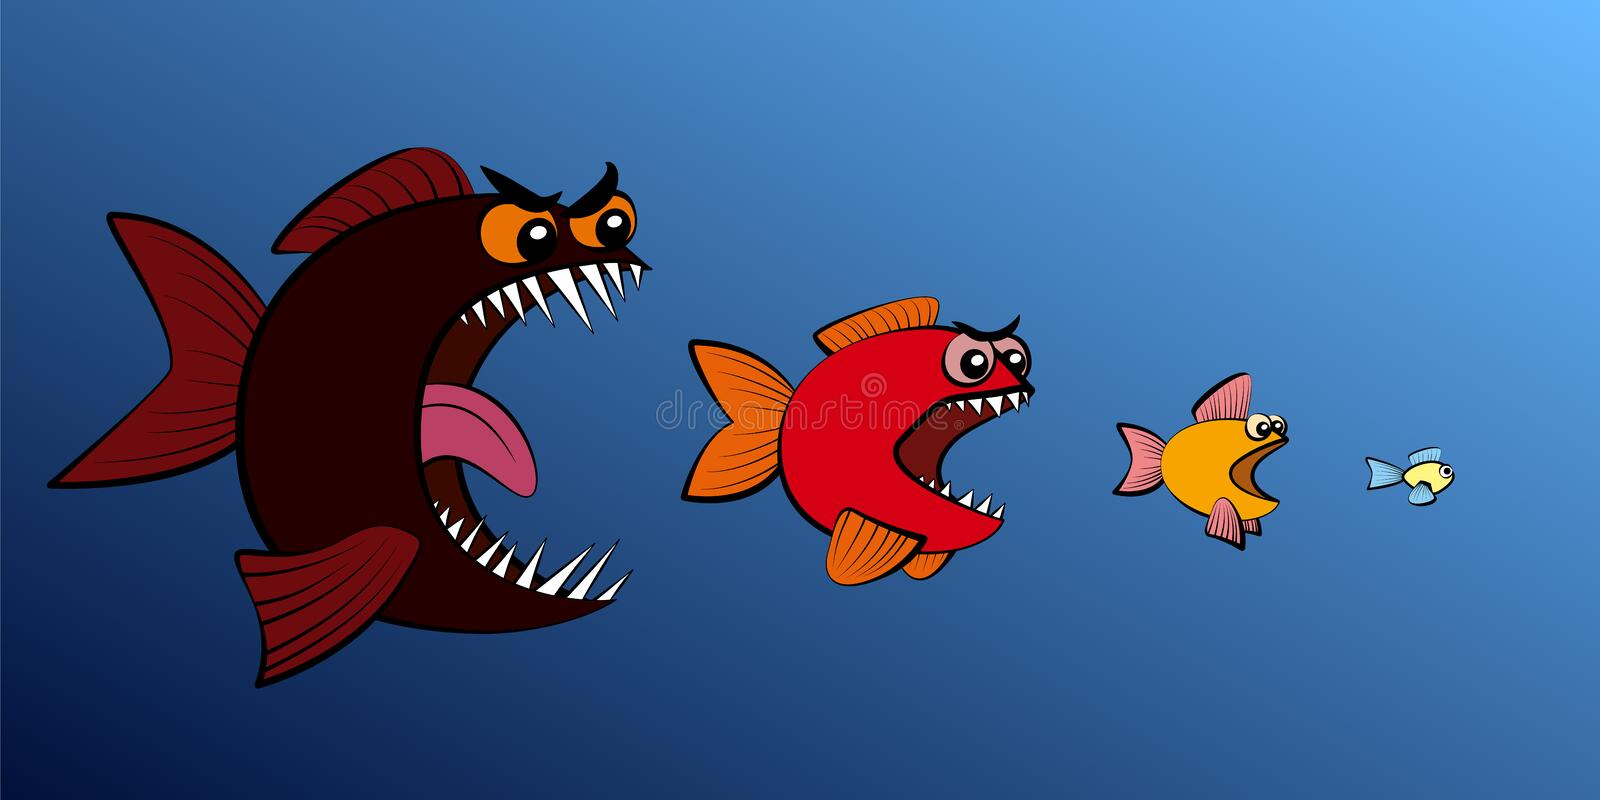 Big Fish Eats Smaller Fish Food Chain. Big fish eats small fish - symbol for food chain, business takeover, hierarchy, absorption, usurpation or seizing power vector illustration